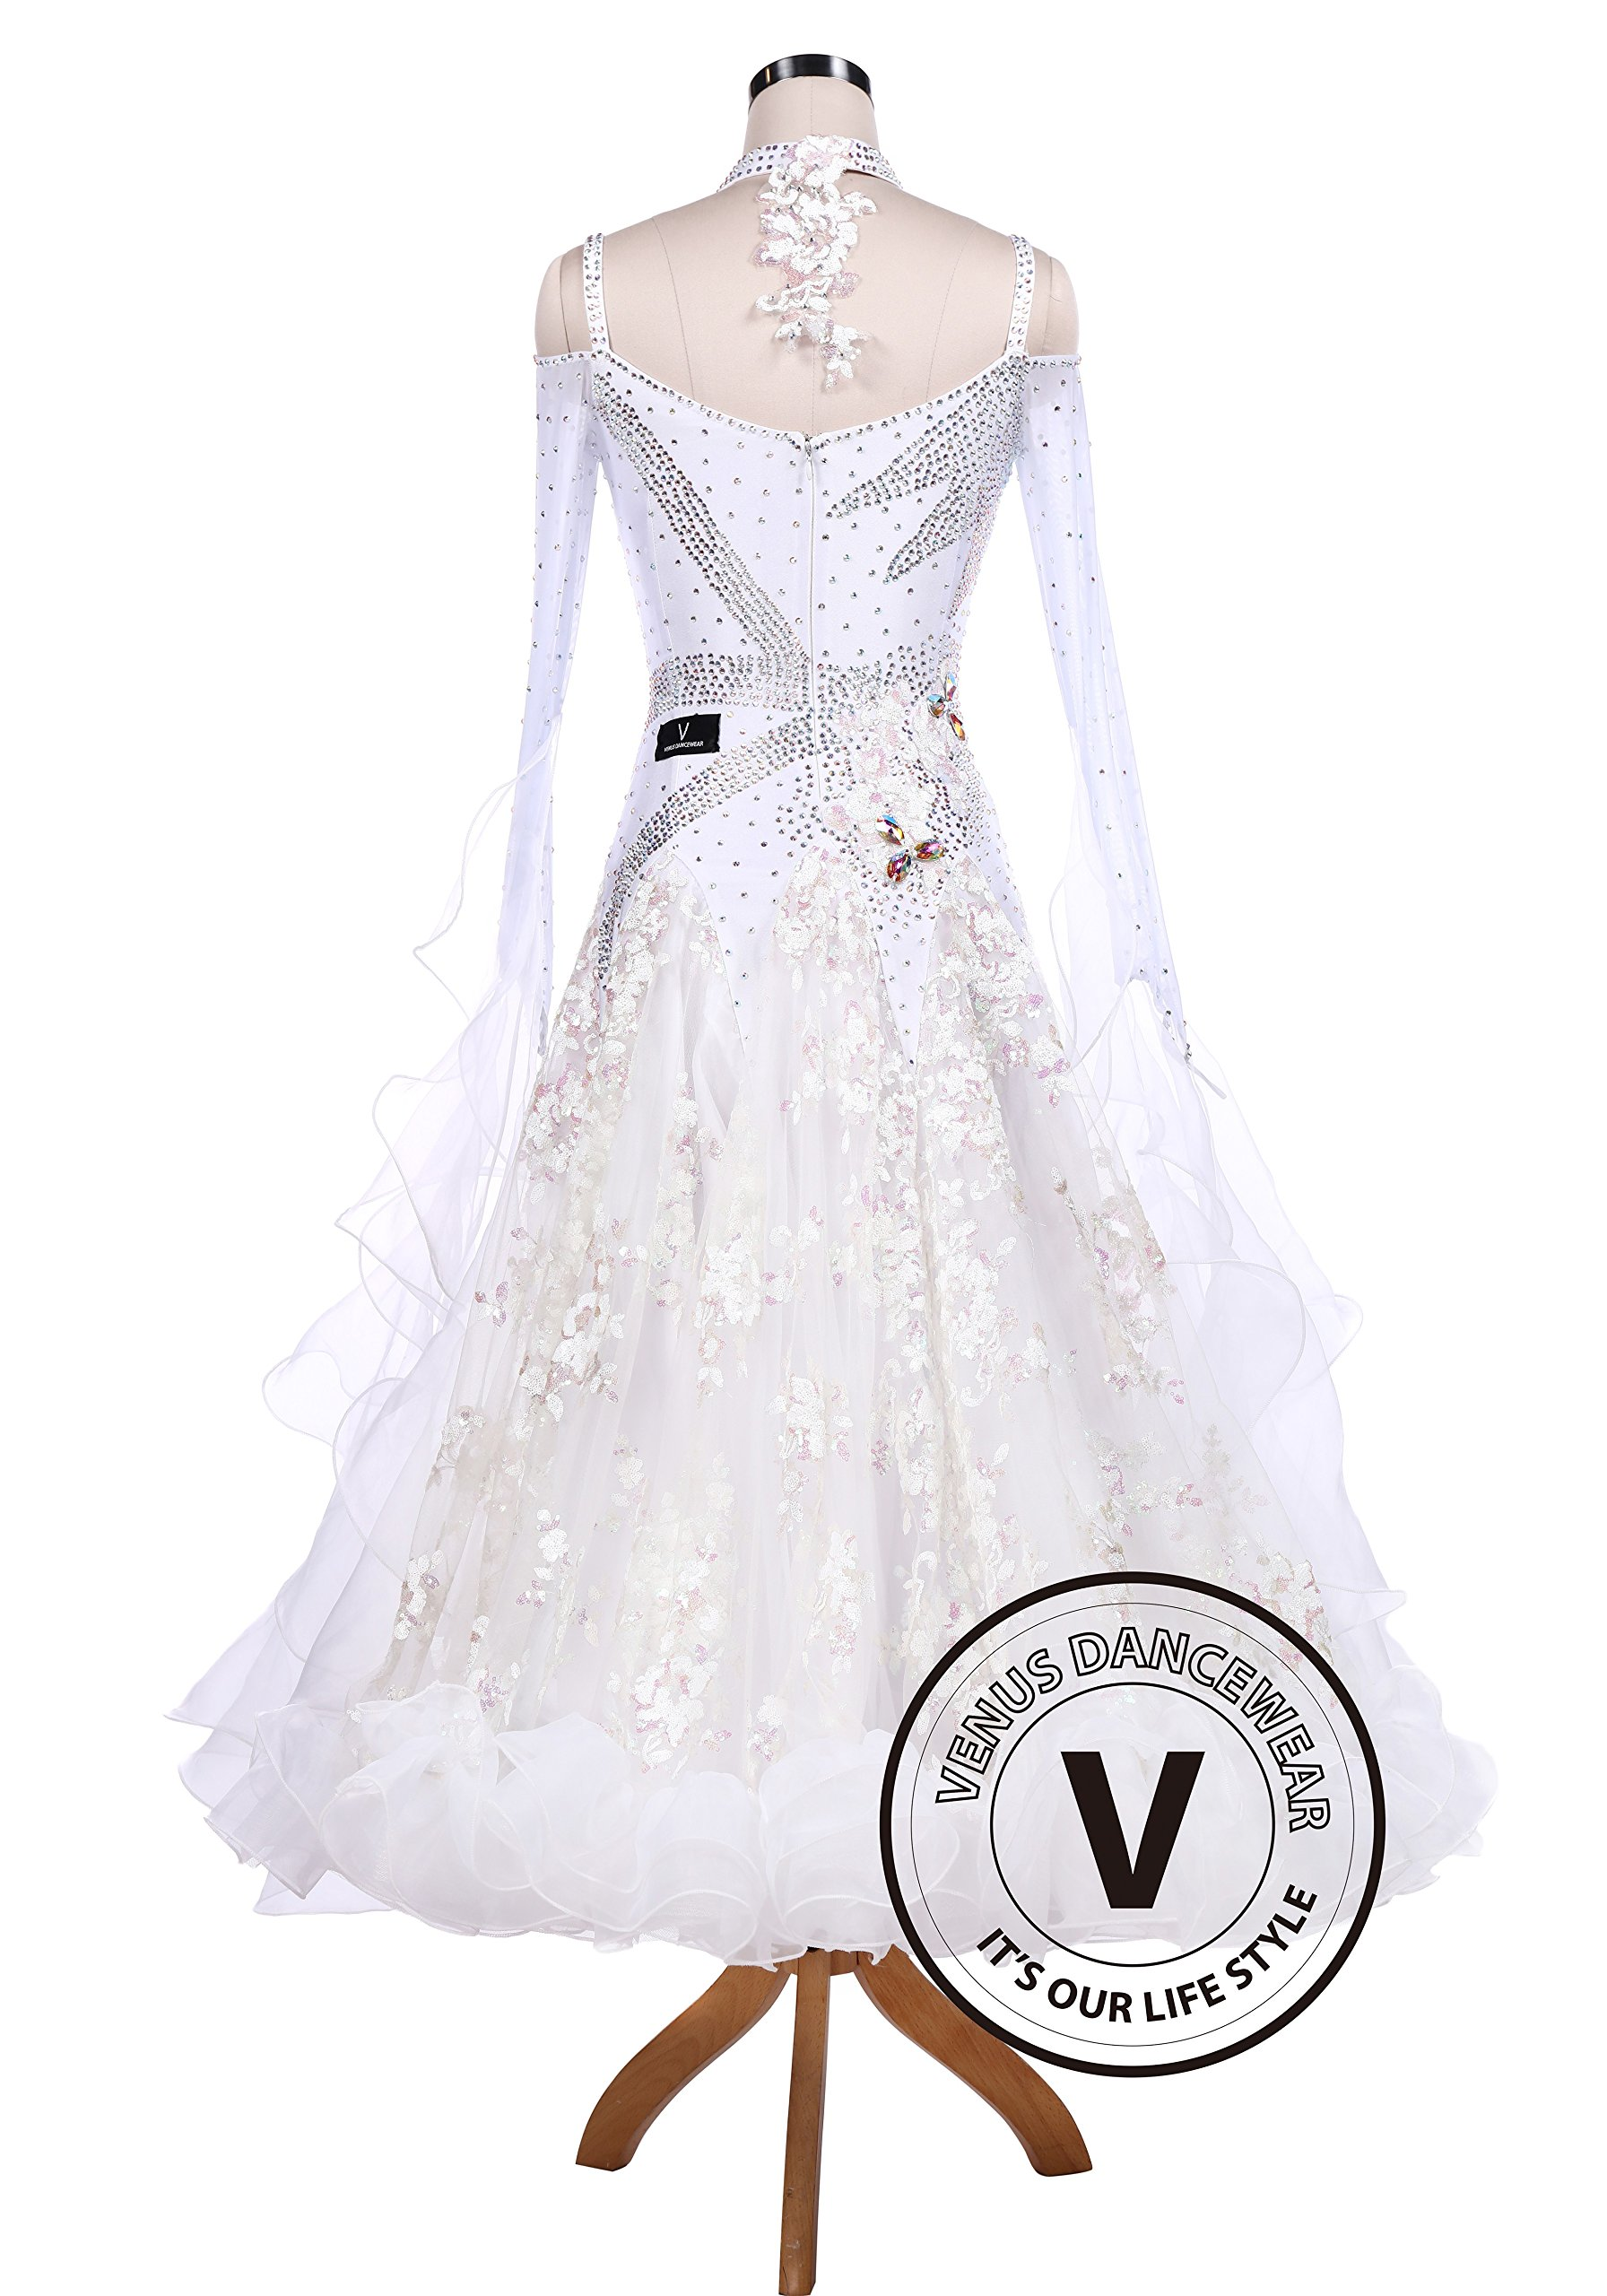 White Sequin Embroidered Ballroom Competition Dance Dress by Venus Dancewear (Image #4)